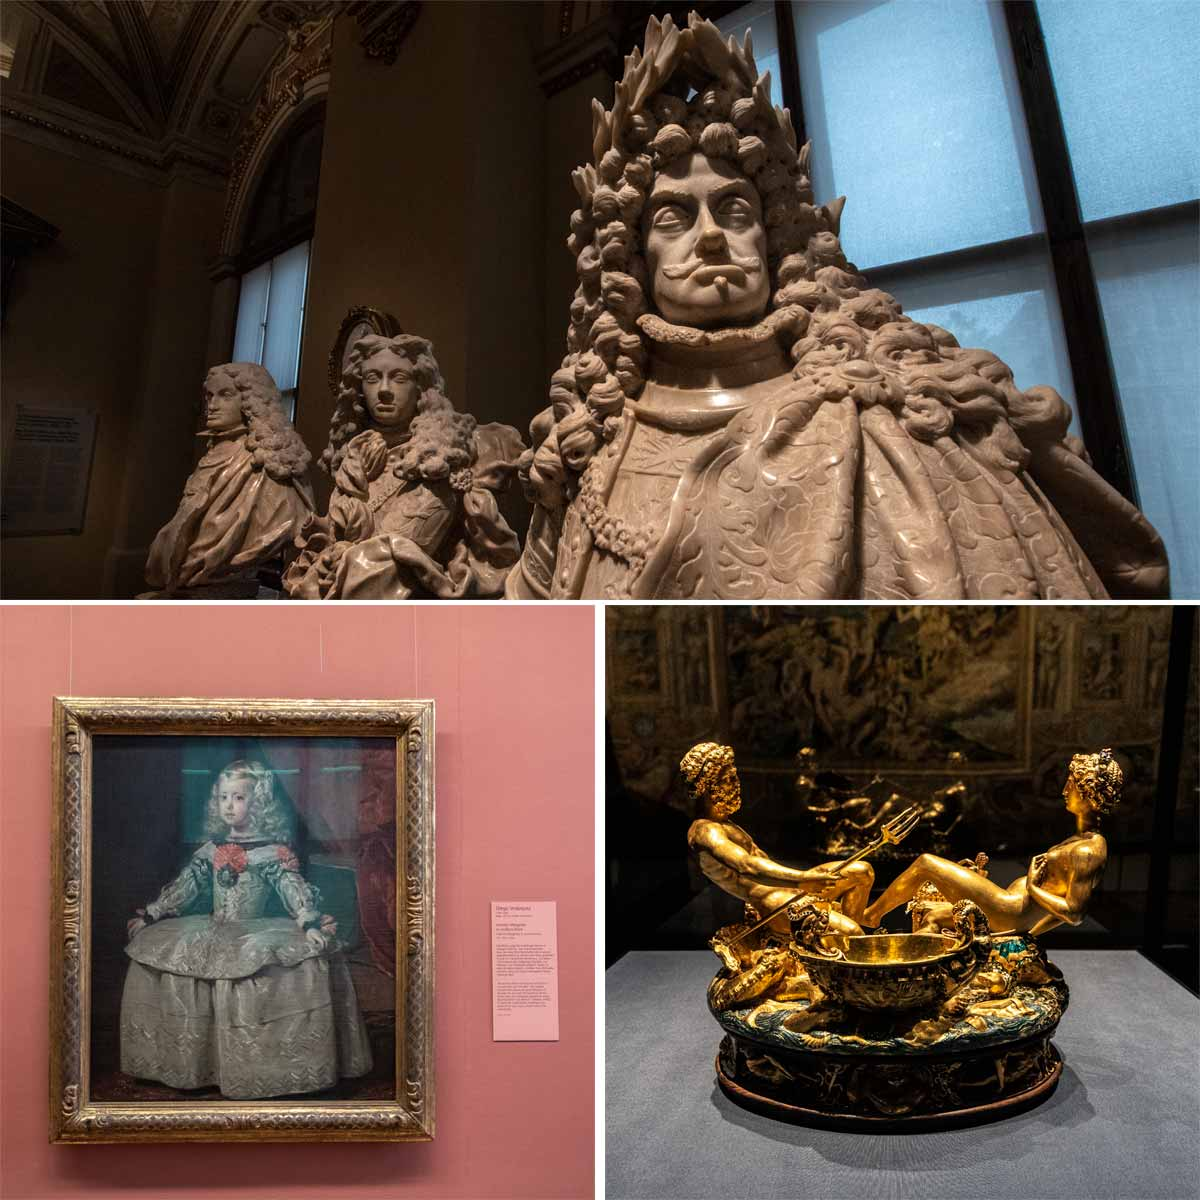 Kunsthistorischen Museum highlights